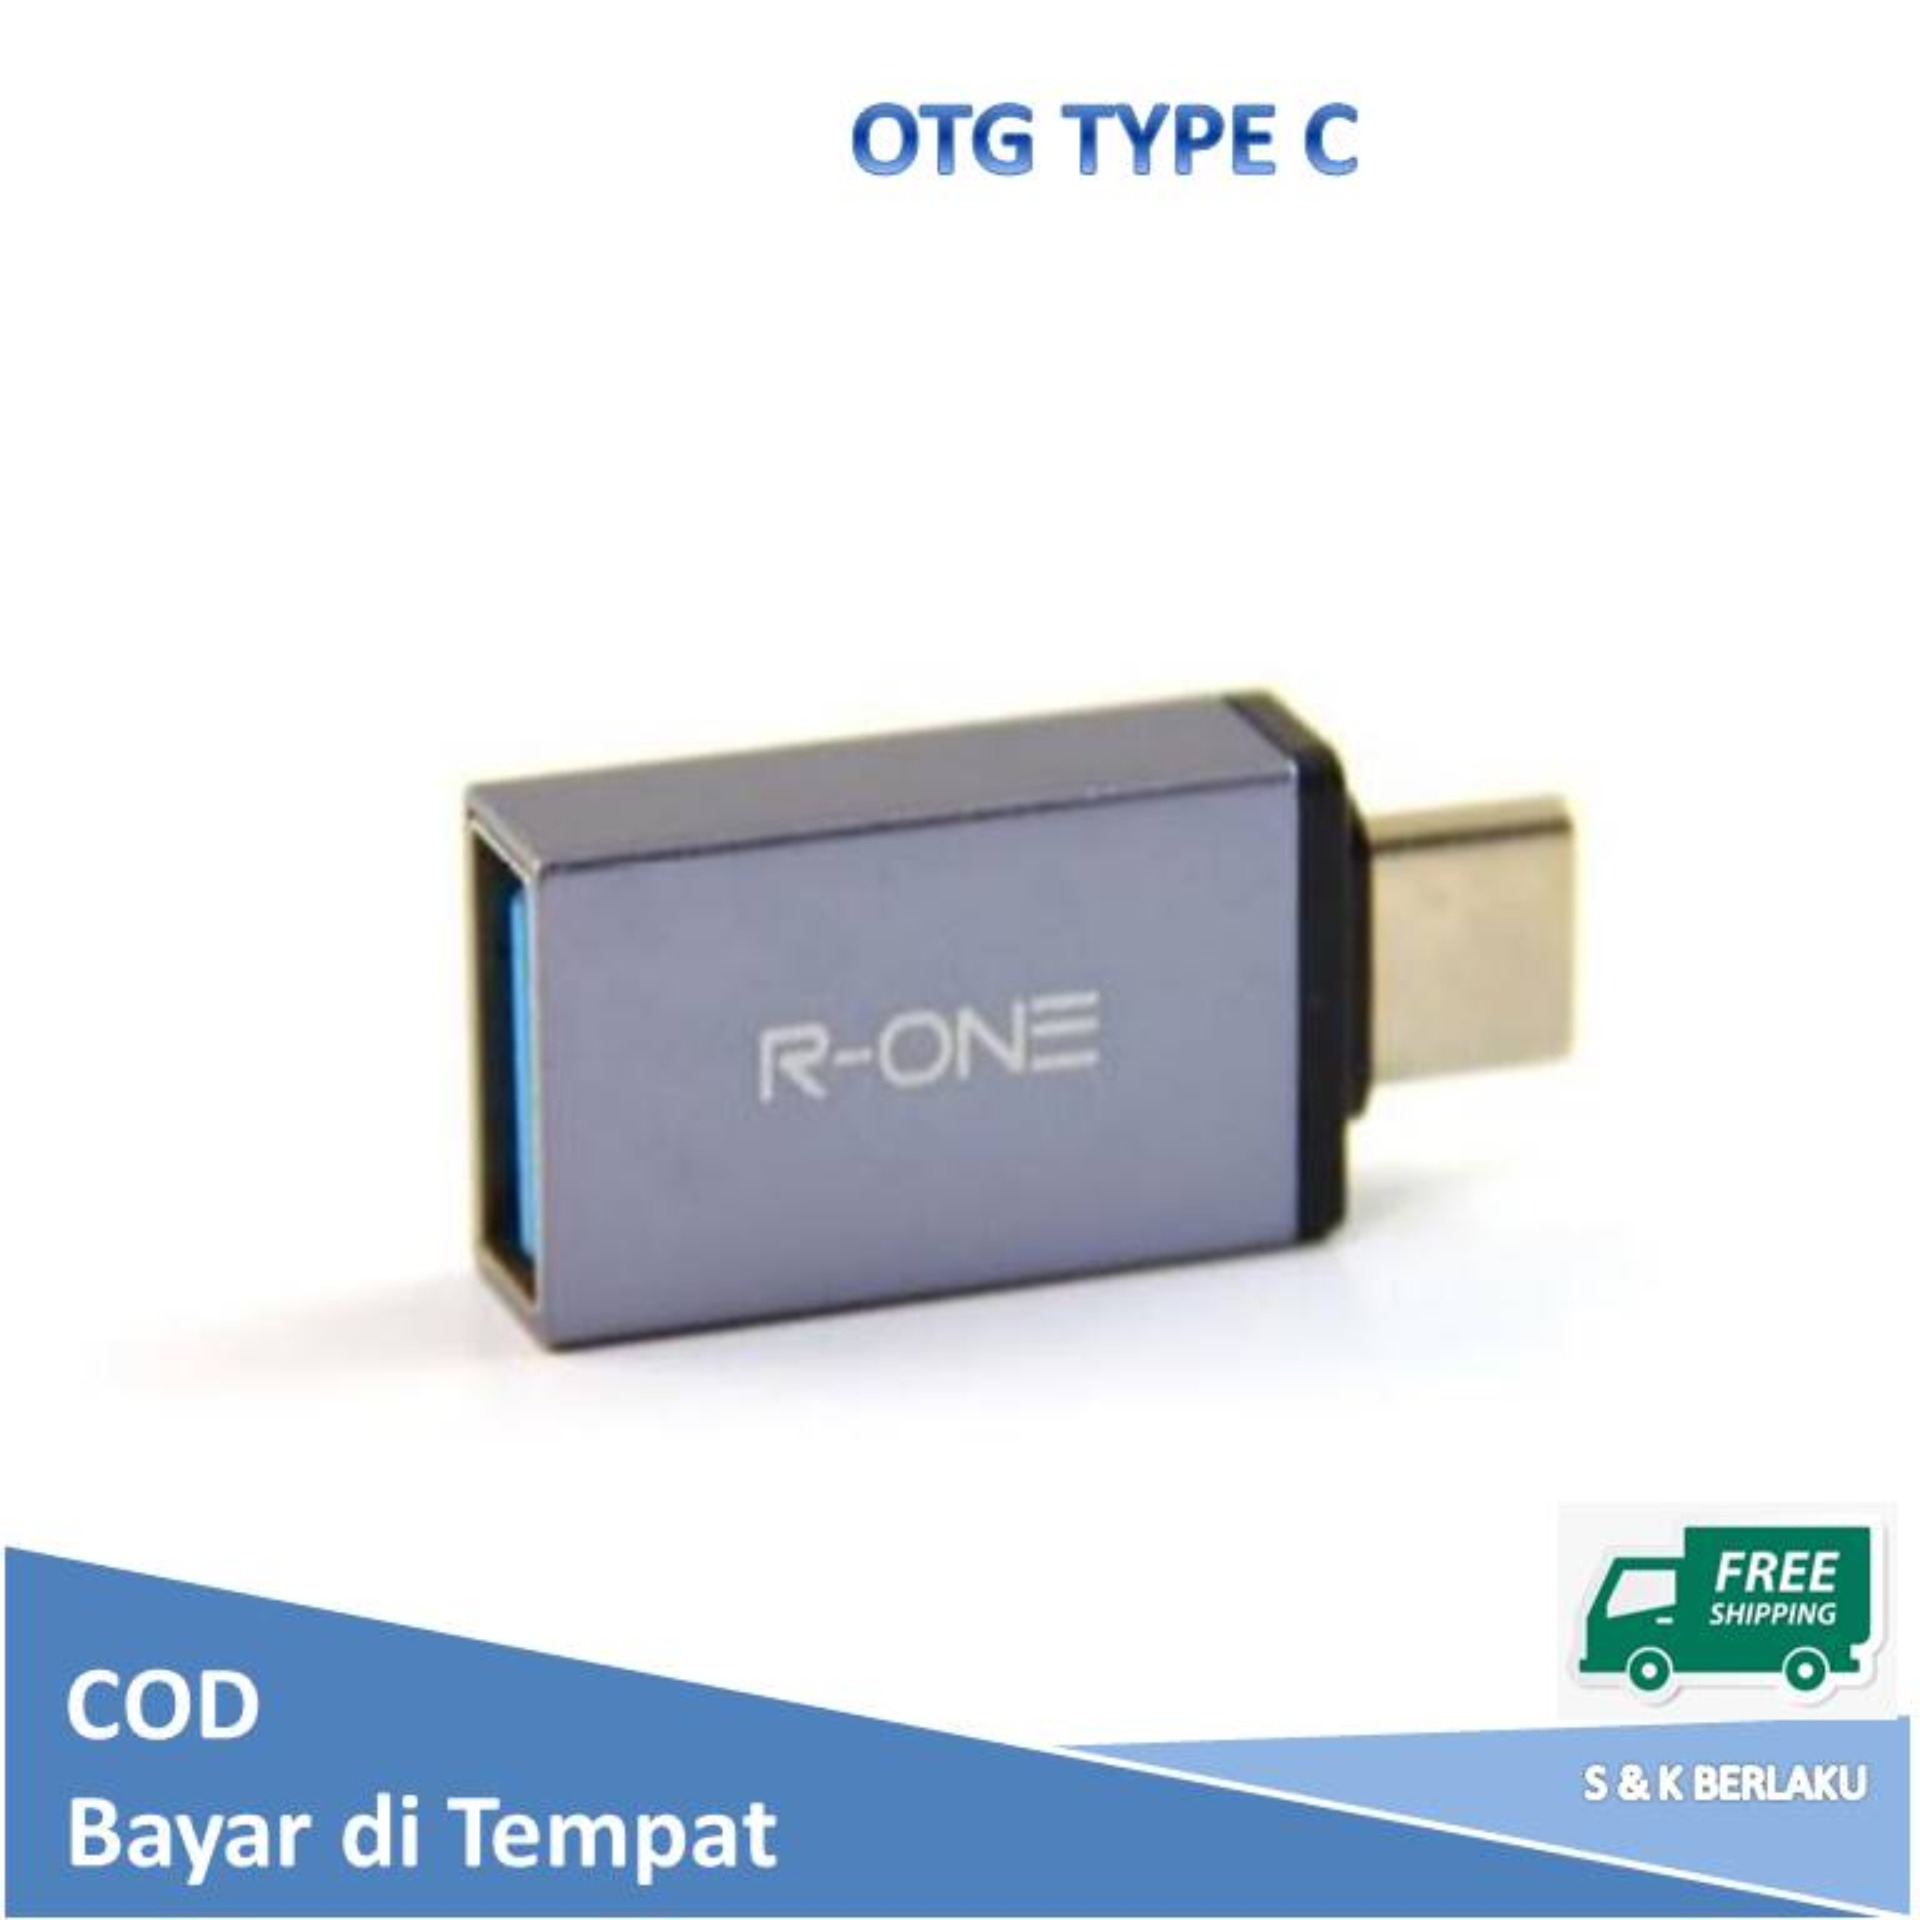 fatqia – otg type c to usb 3.0 converter / connector flashdisk type-c r-one – abu-abu